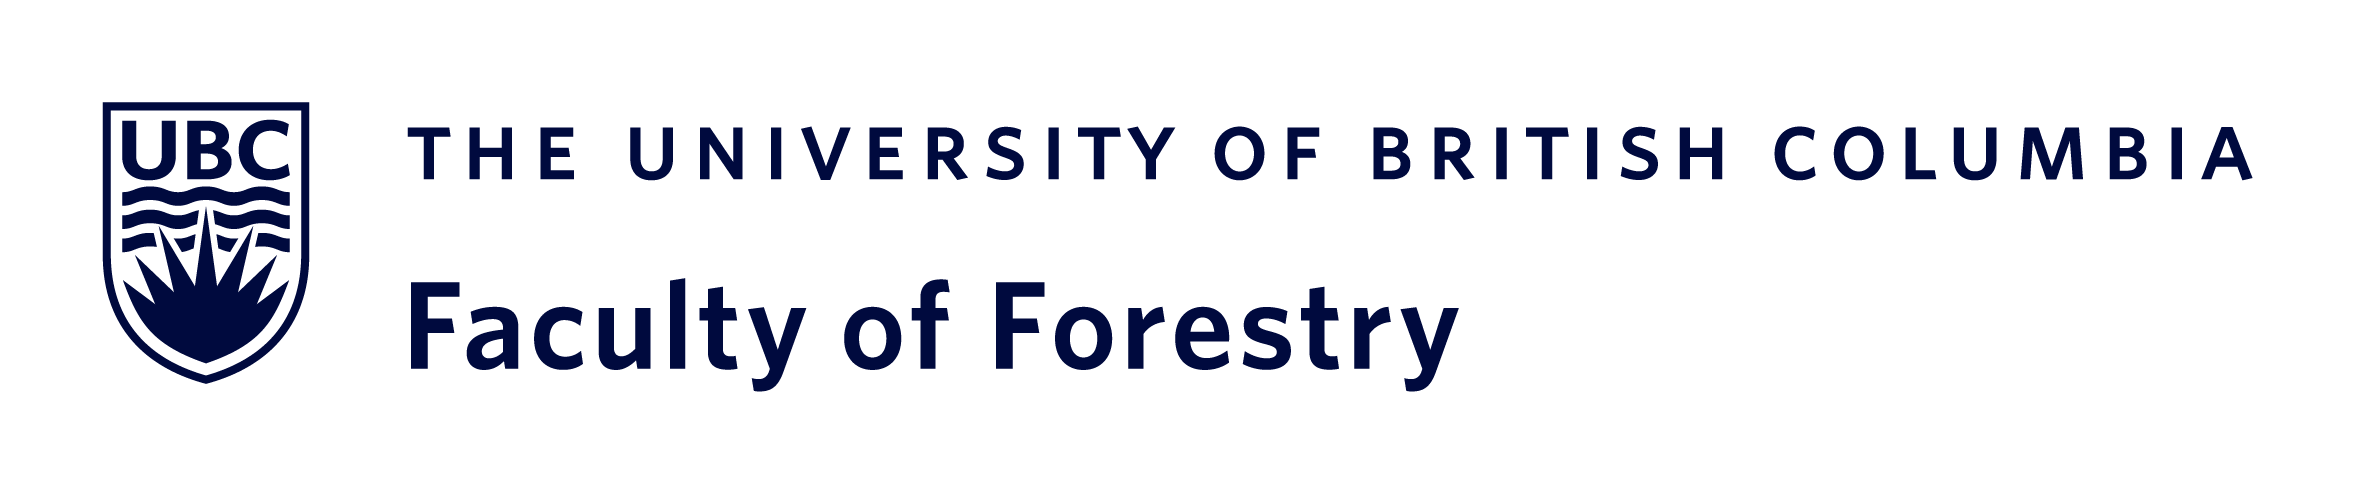 Faculty of Forestry, University of British Columbia